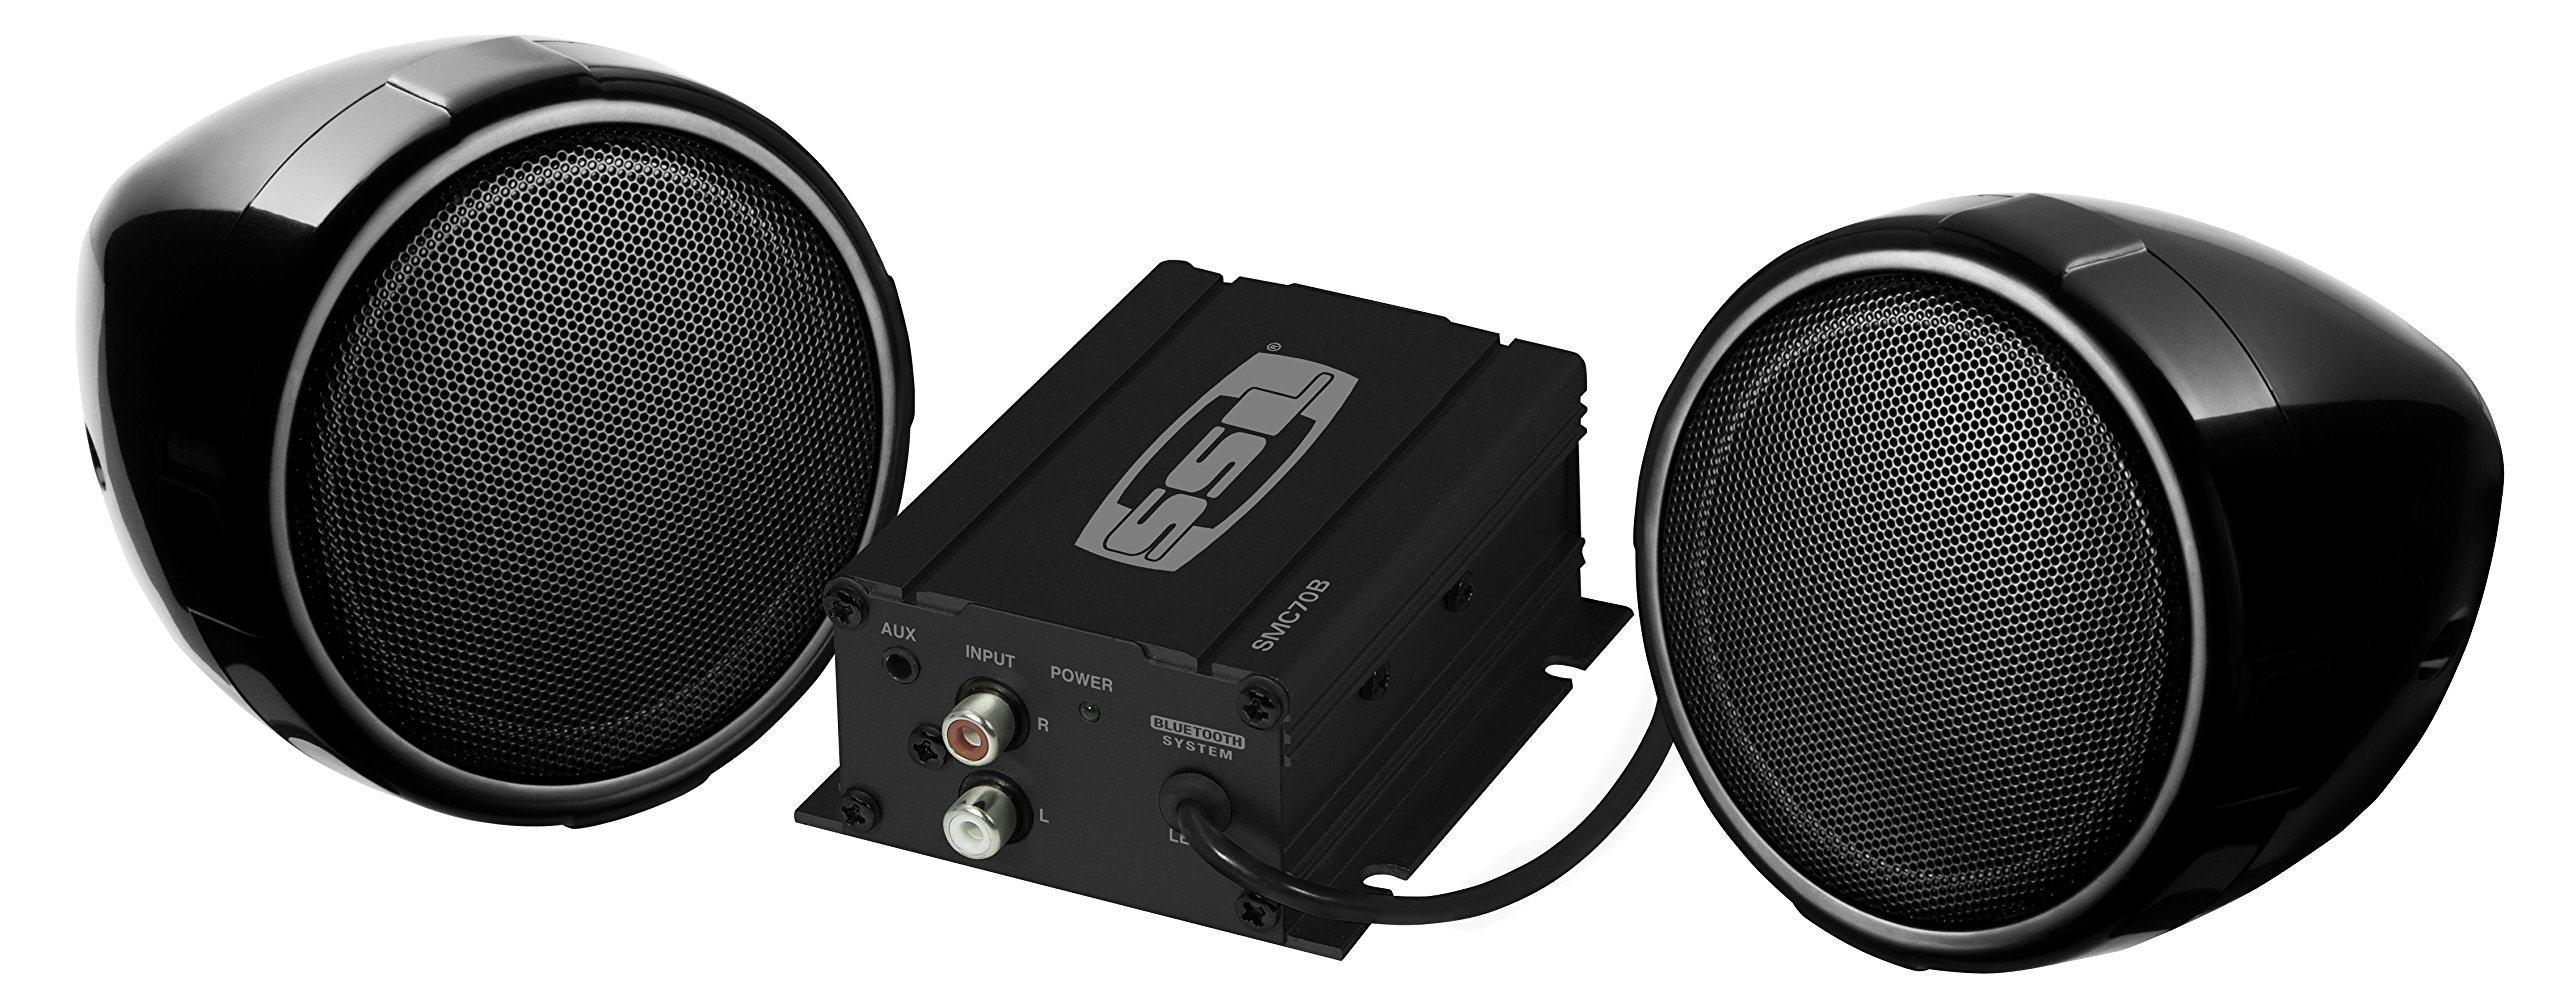 Sound Storm SMC70B Sound System, Weatherproof, Bluetooth Amplifier, 3 Inch Speakers, Inline Volume Control, ideal for Motorcycles/ATV and 12 Volt Applications